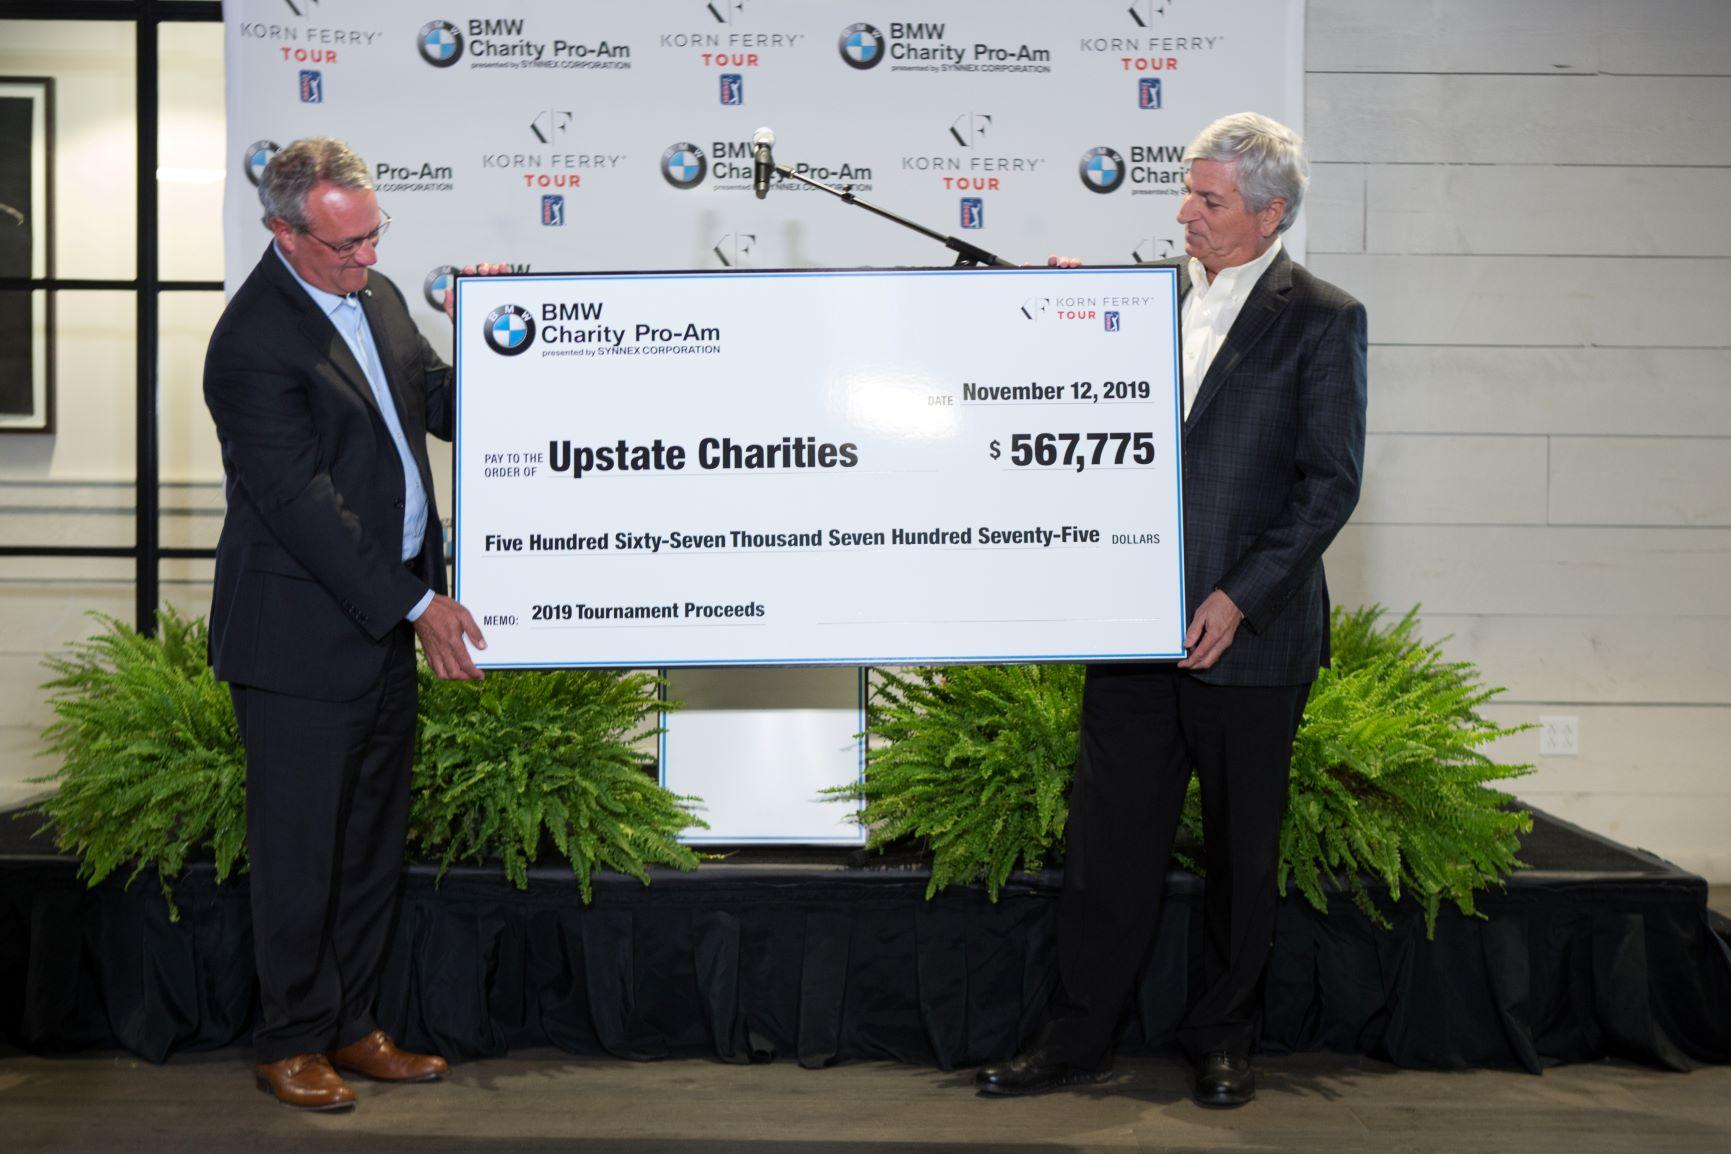 BMW Charity Pro-Am Presented by SYNNEX Corporation Awards Funds to Upstate Charities for 2019